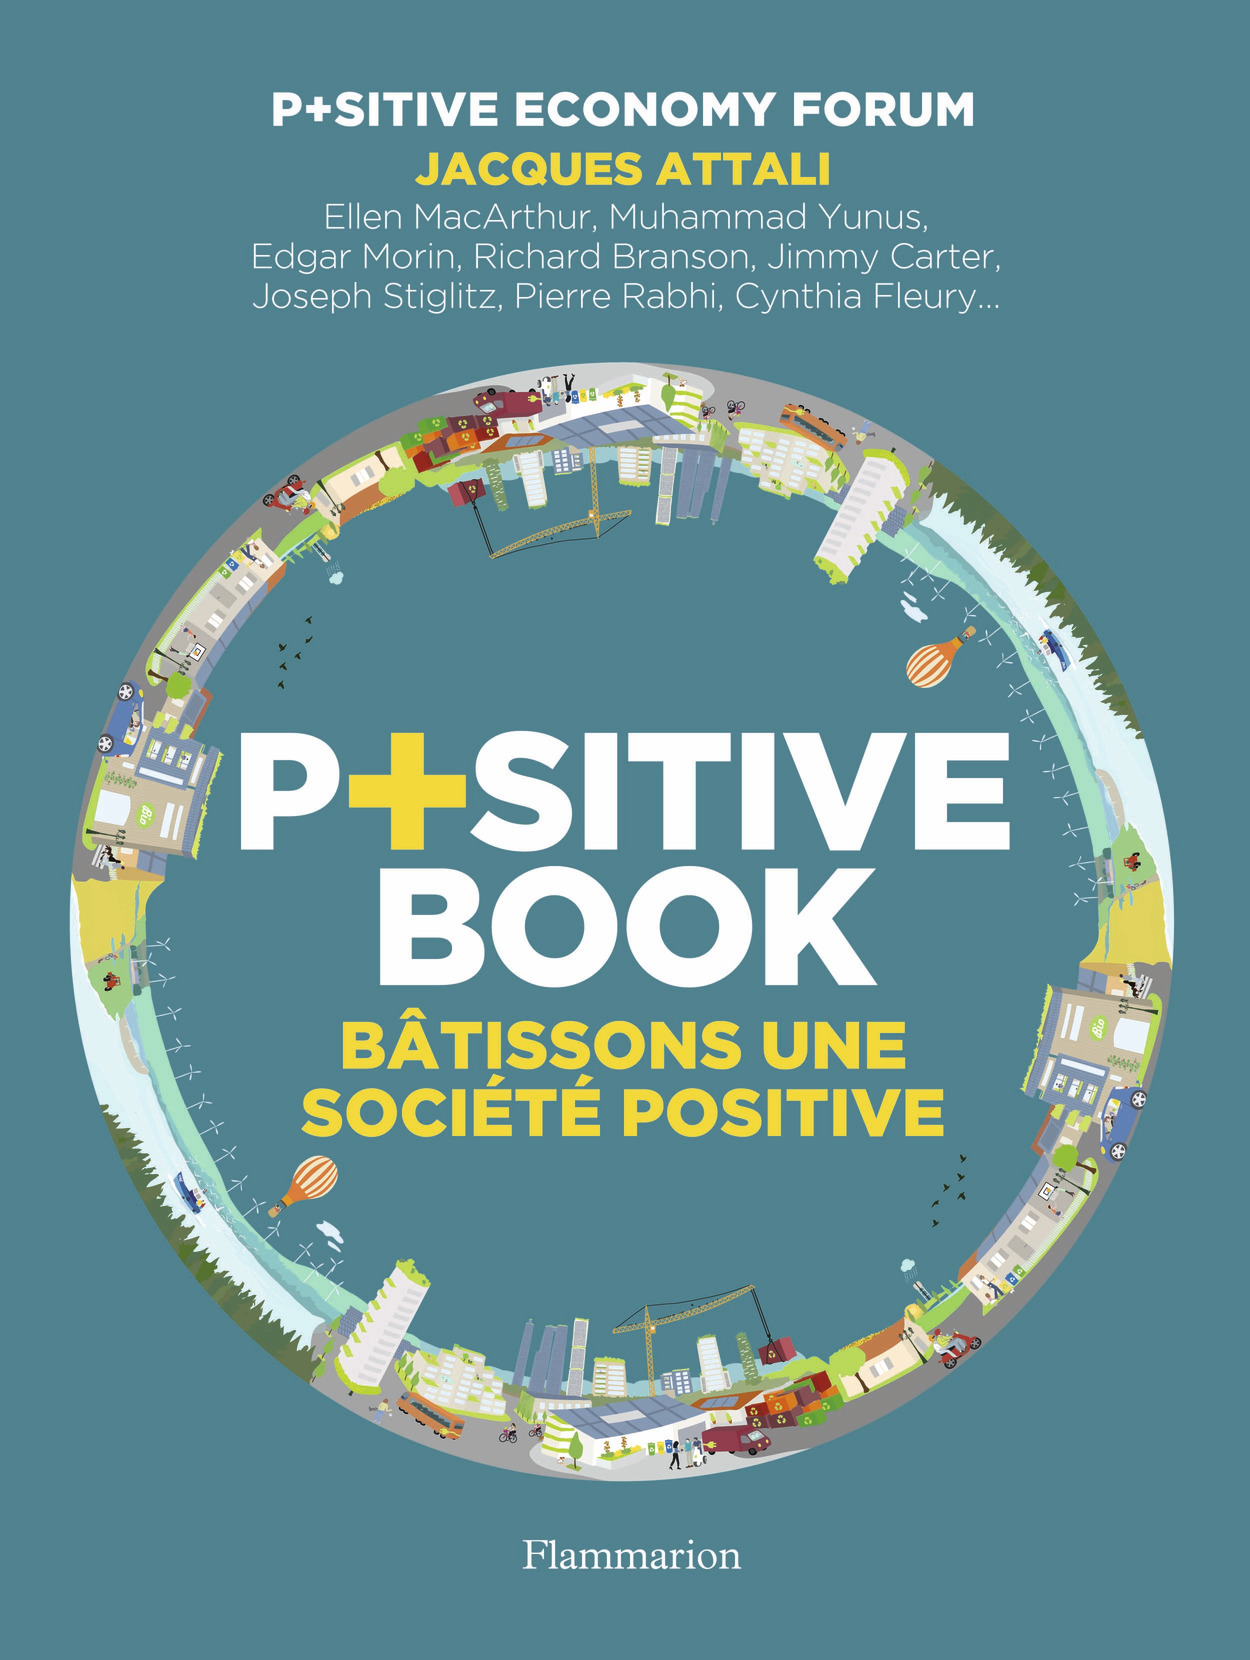 P+SITIVE BOOK - BATISSONS UNE SOCIETE POSITIVE